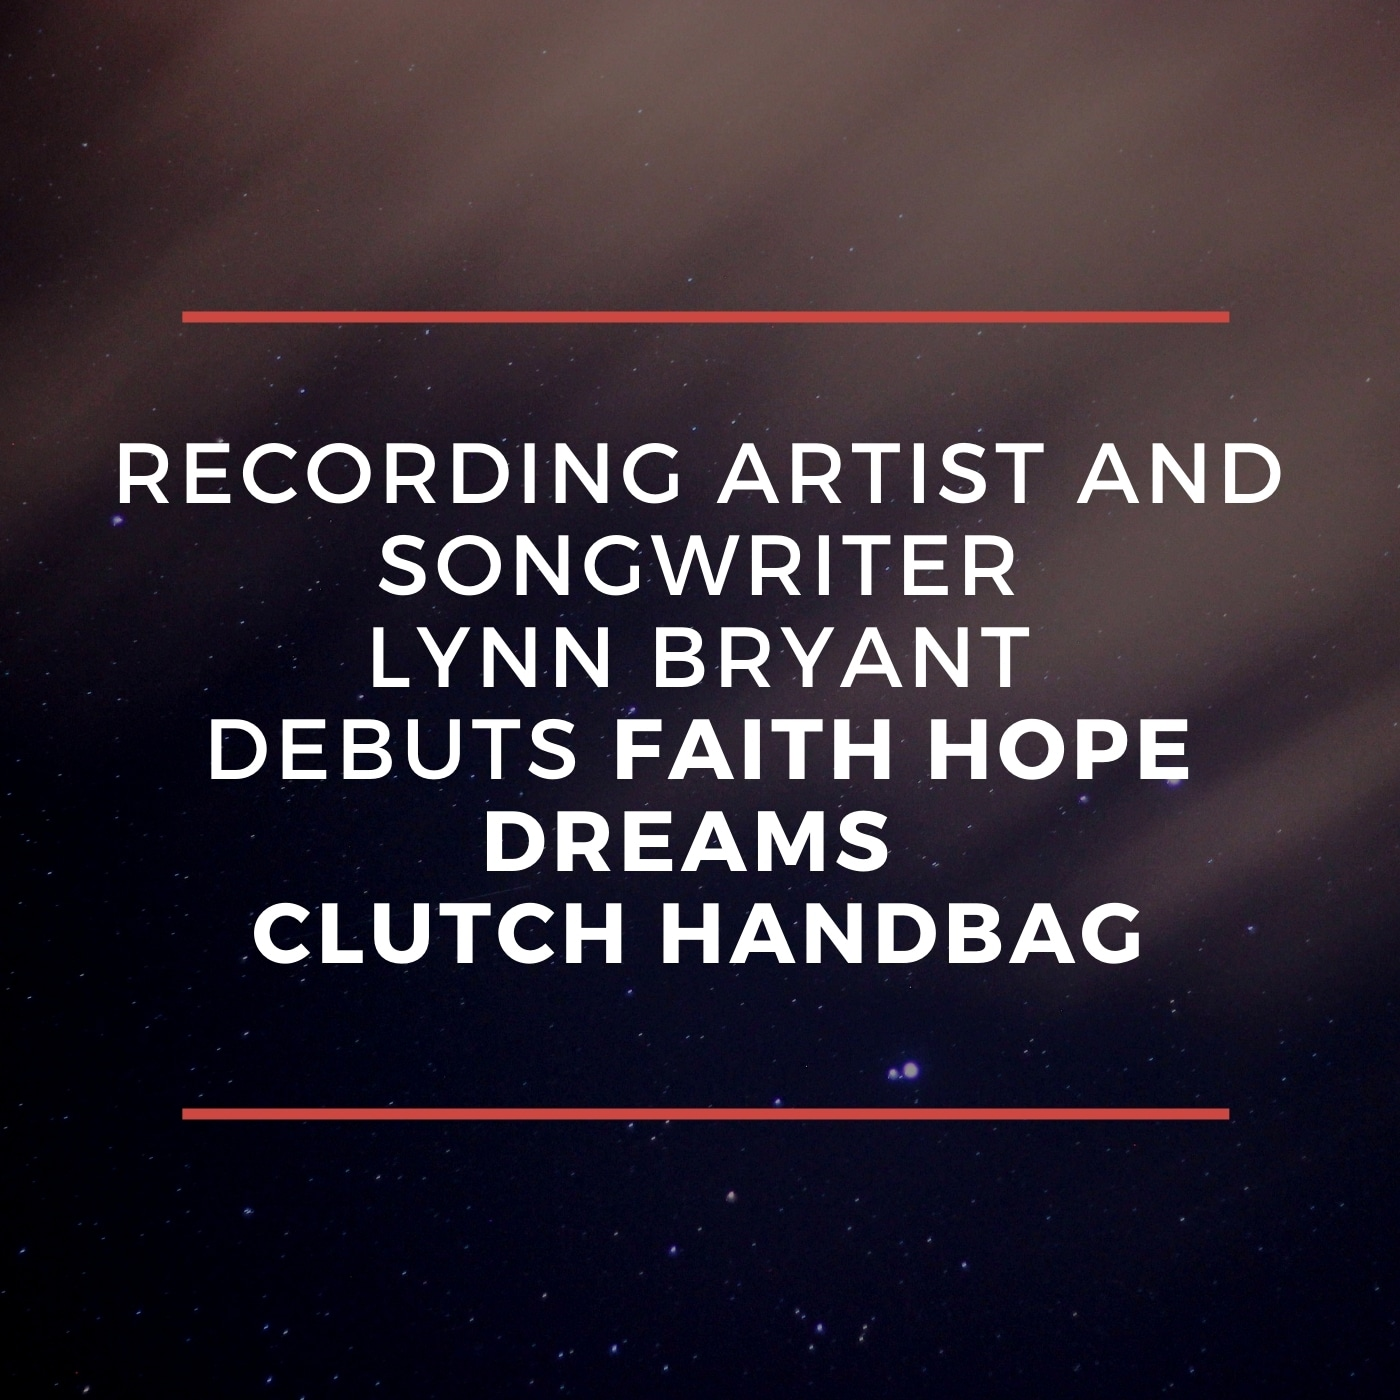 Recording Artist and Songwriter Lynn Bryant Debuts Faith Hope Dreams™ Clutch Handbag